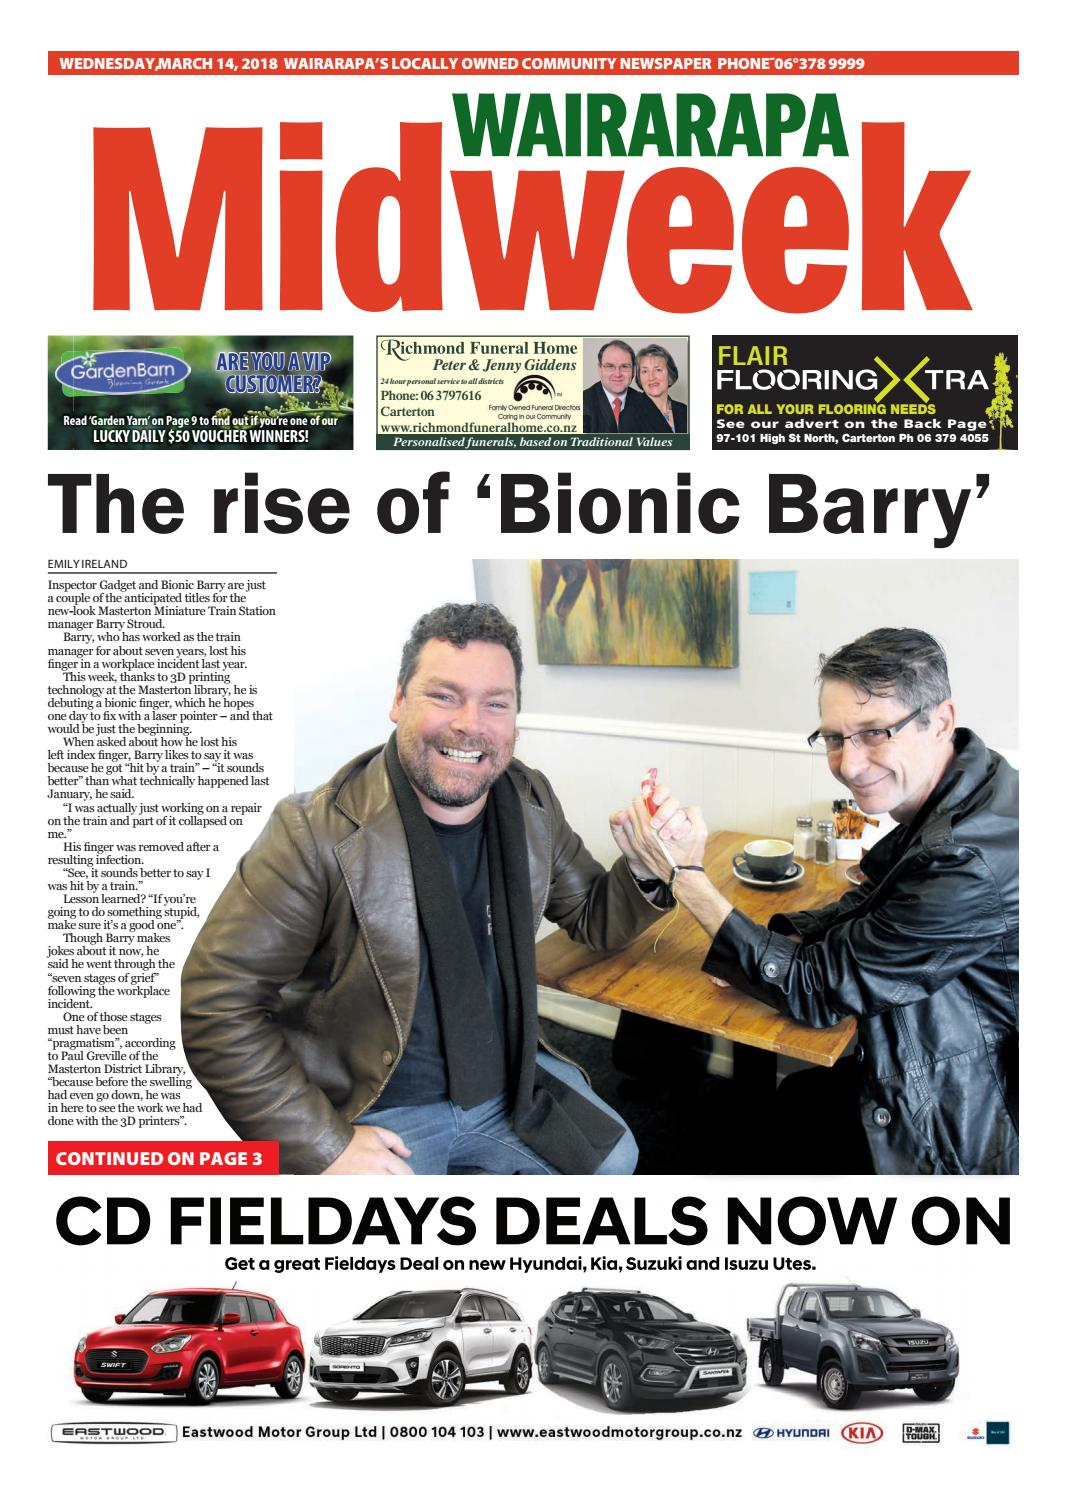 3d4532c4cfc Wairarapa Midweek Wed 14th March by Wairarapa Times-Age - issuu